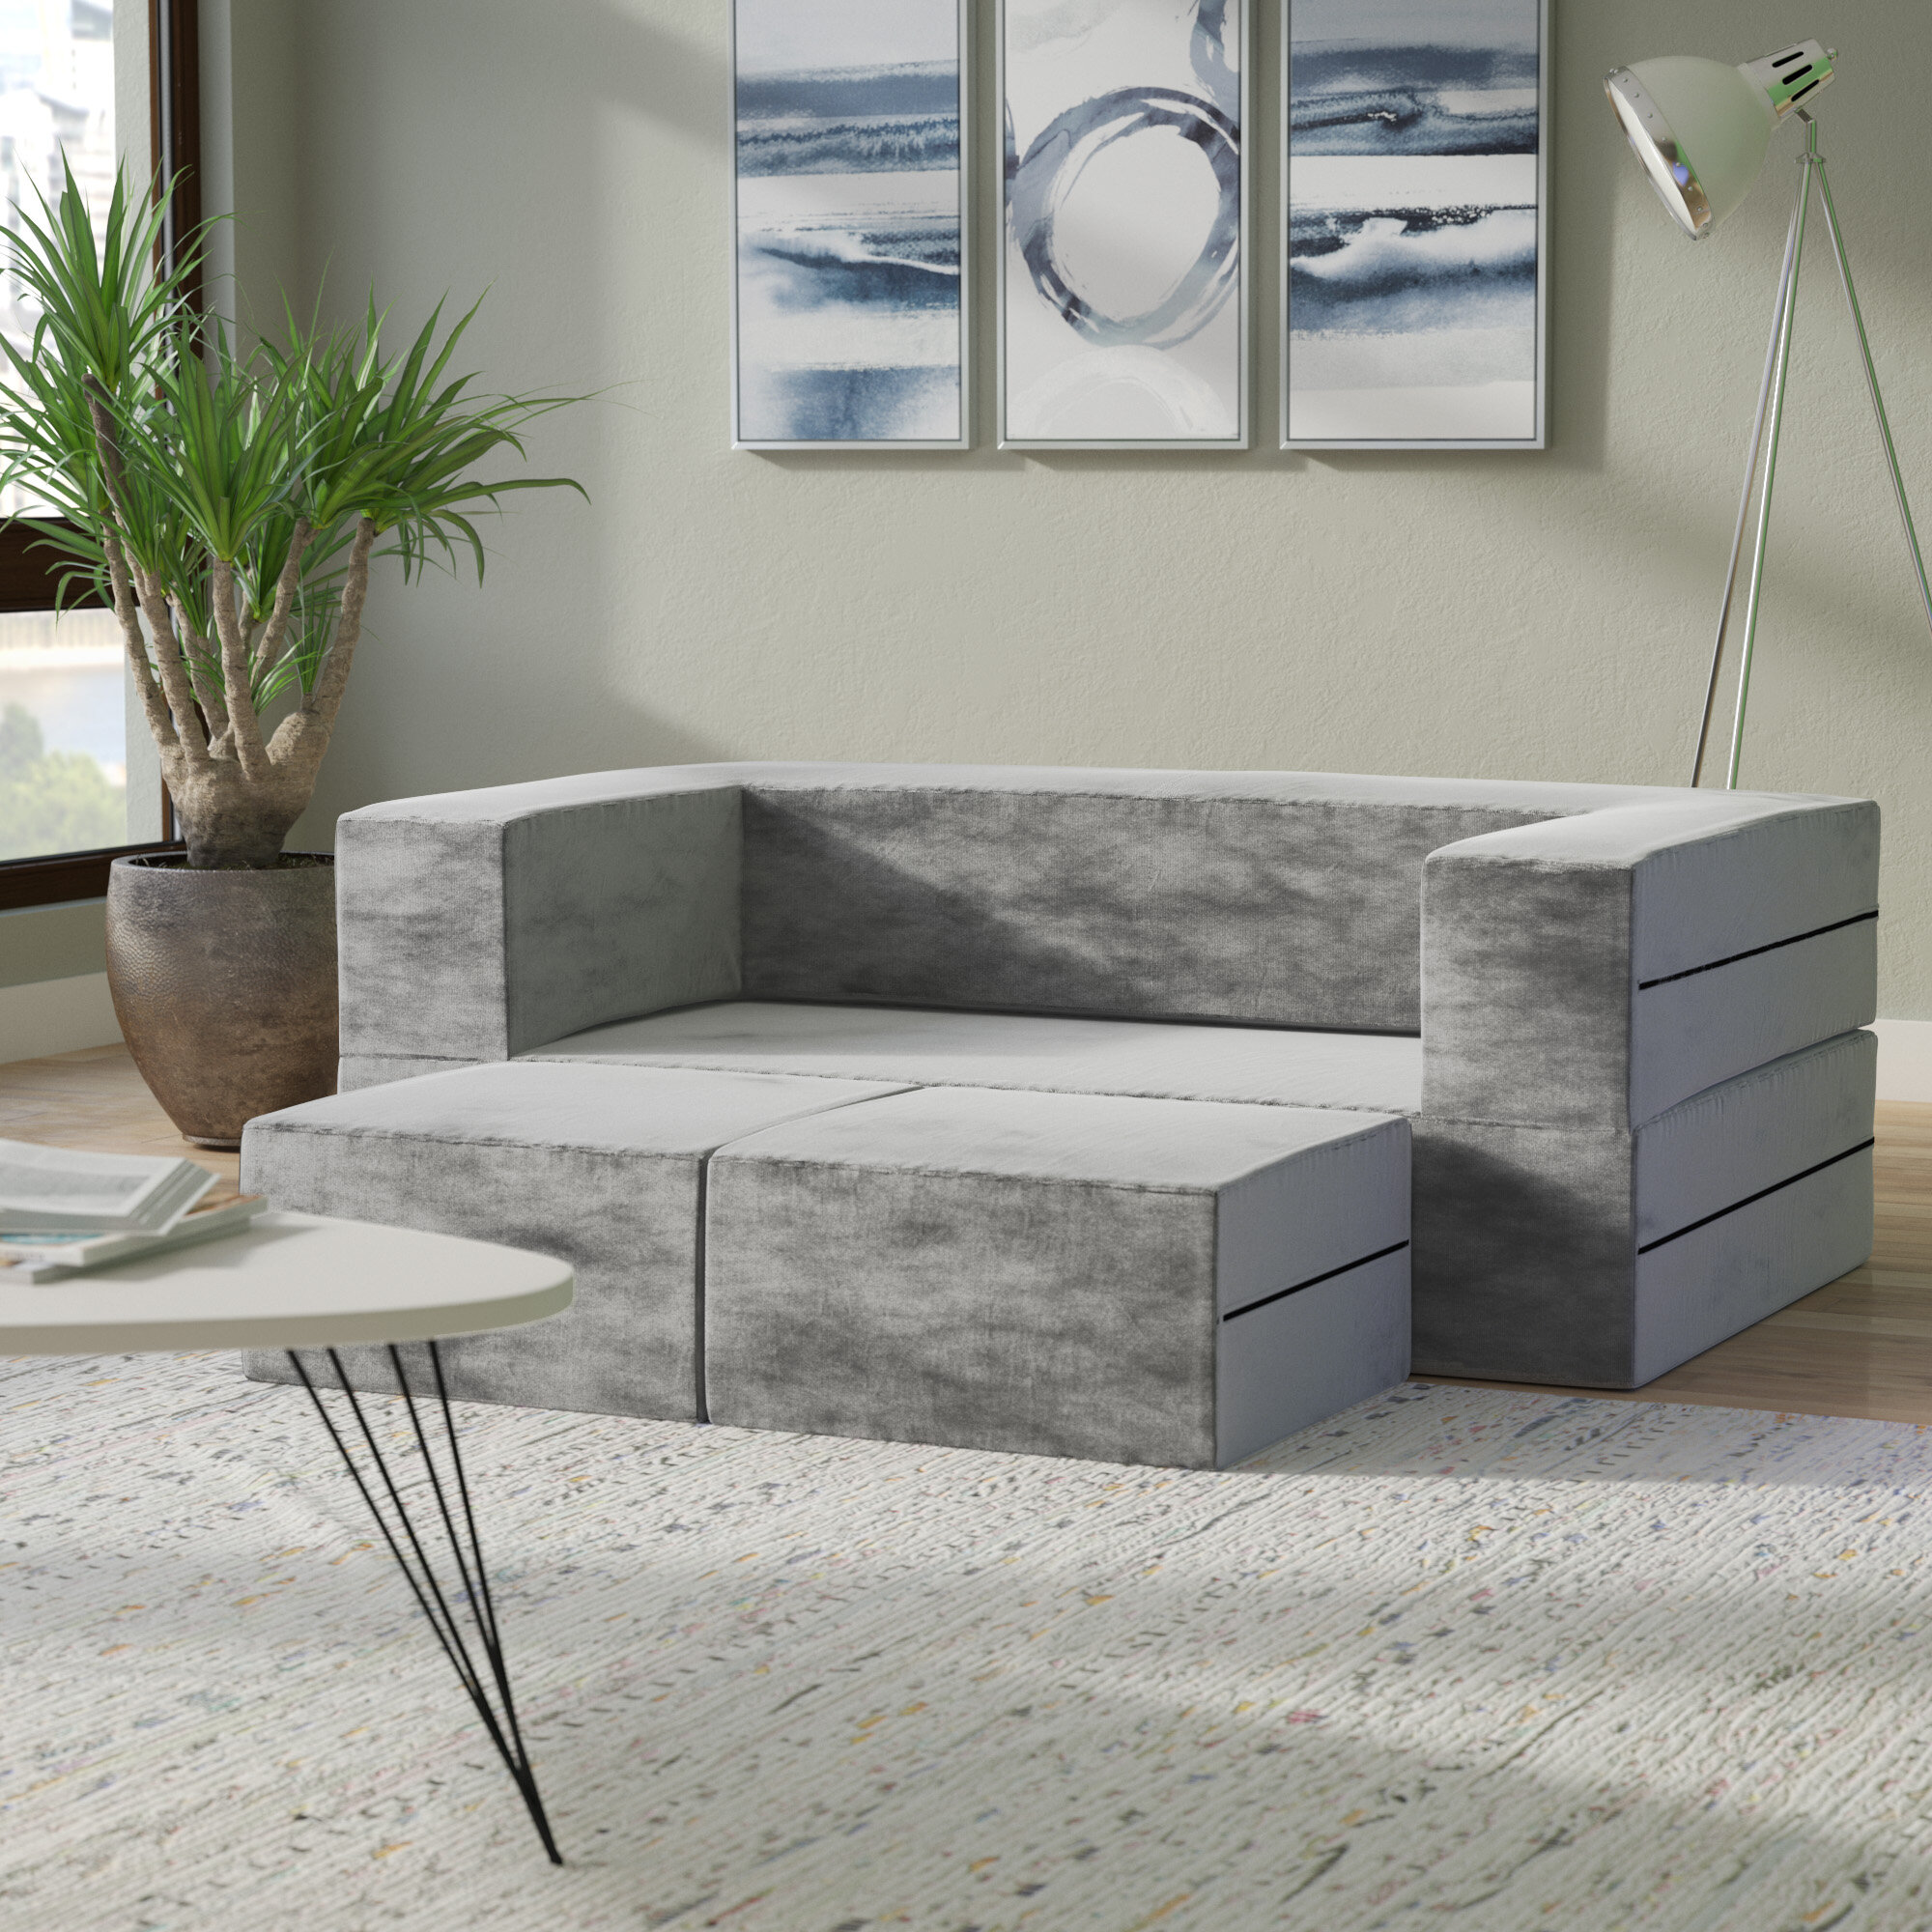 fabric loveseat sofa steal grey ottoman ideas of a photo and design set best montreal